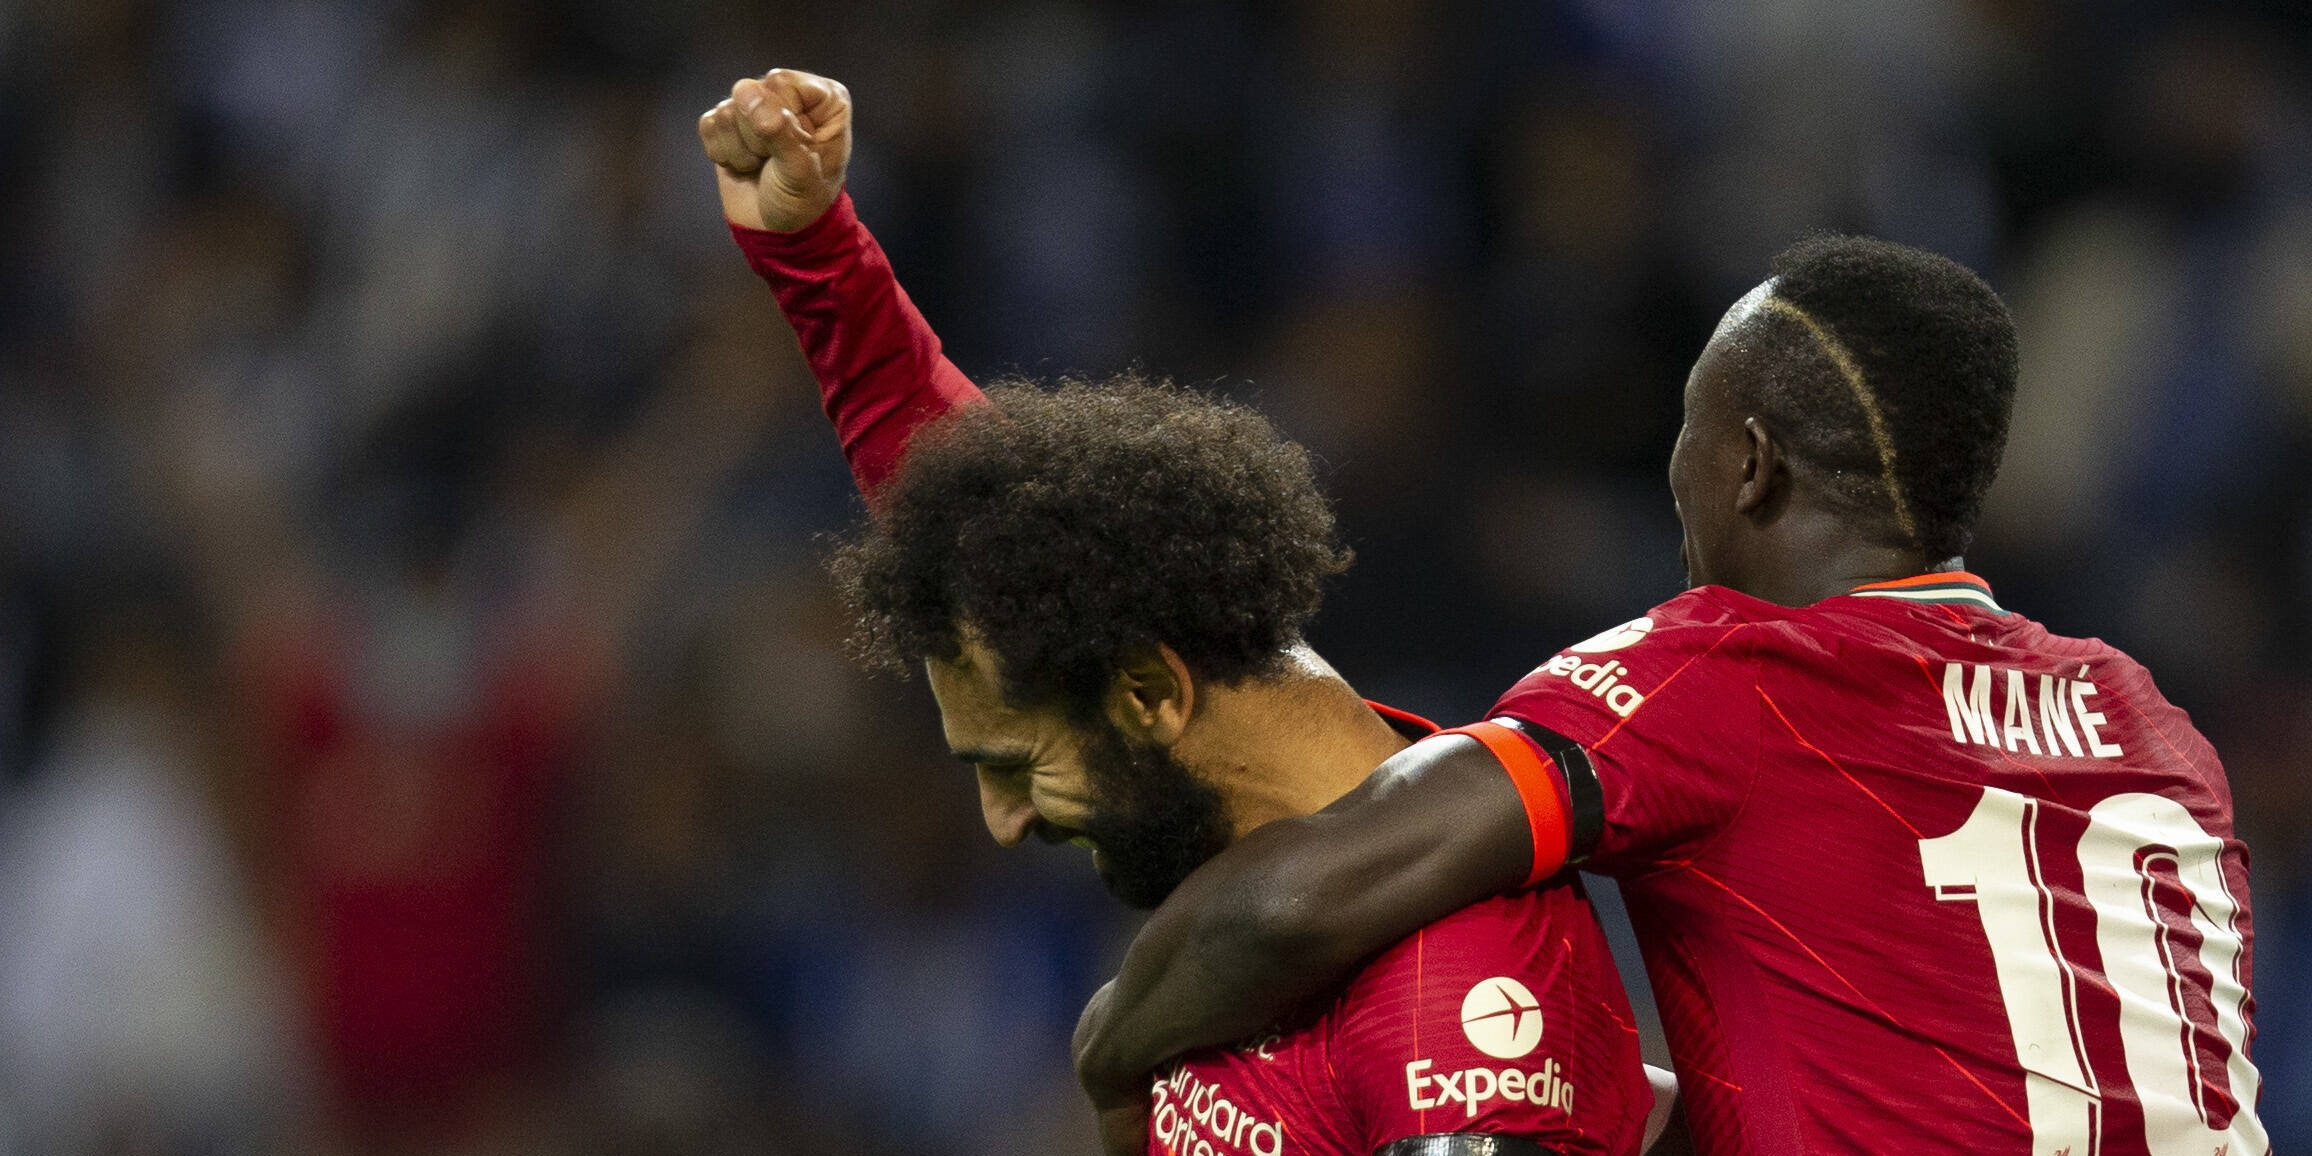 Salah leapfrogs Messi in impressive Champions League statistic after netting UCL double